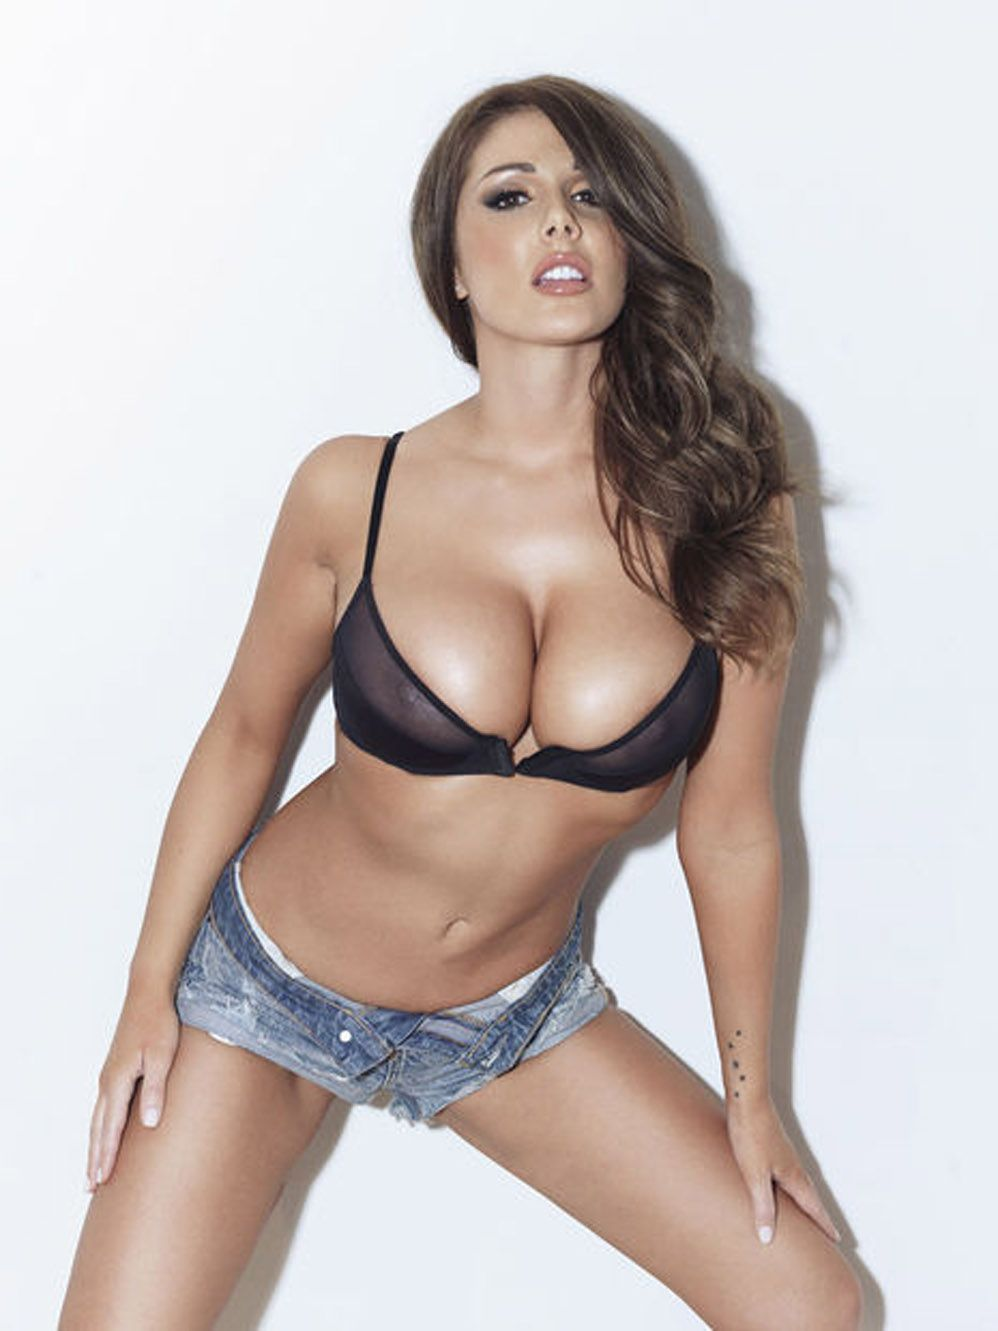 Lucy Pinder Hot Sexy Girls Glamour Models